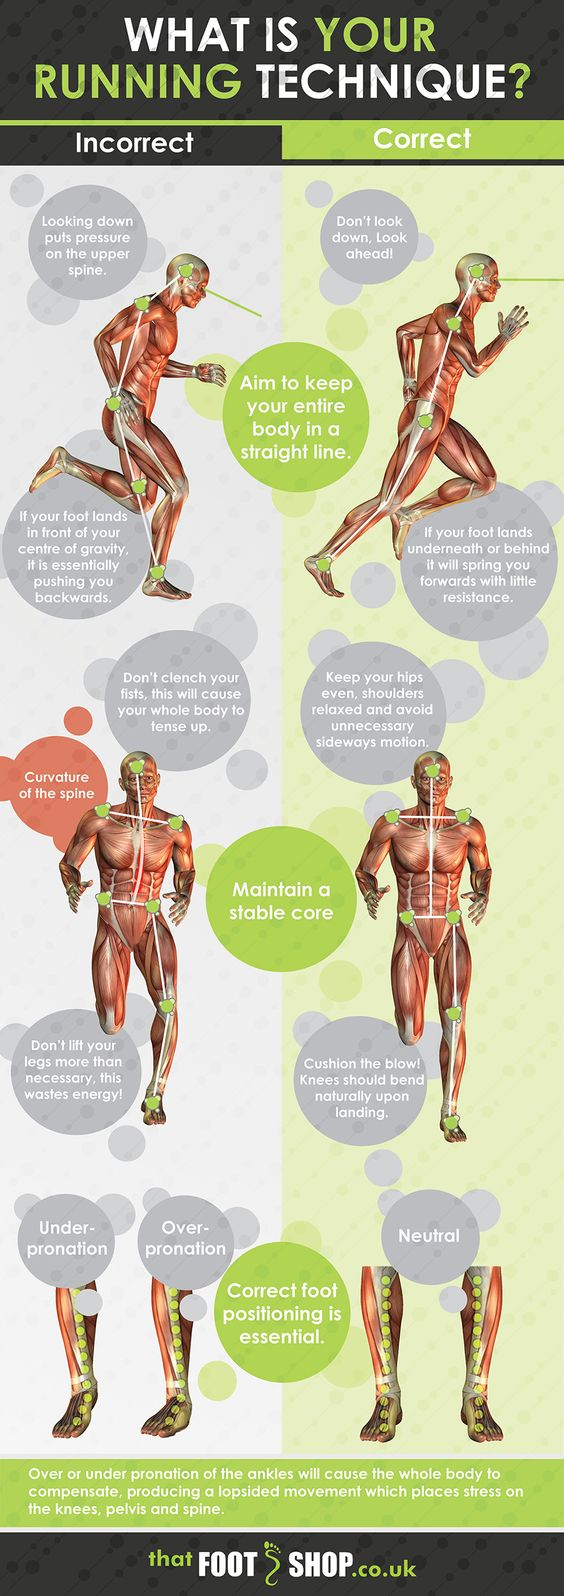 Shorter Warm Up Results In Significantly Less Muscle Fatigue #running #health